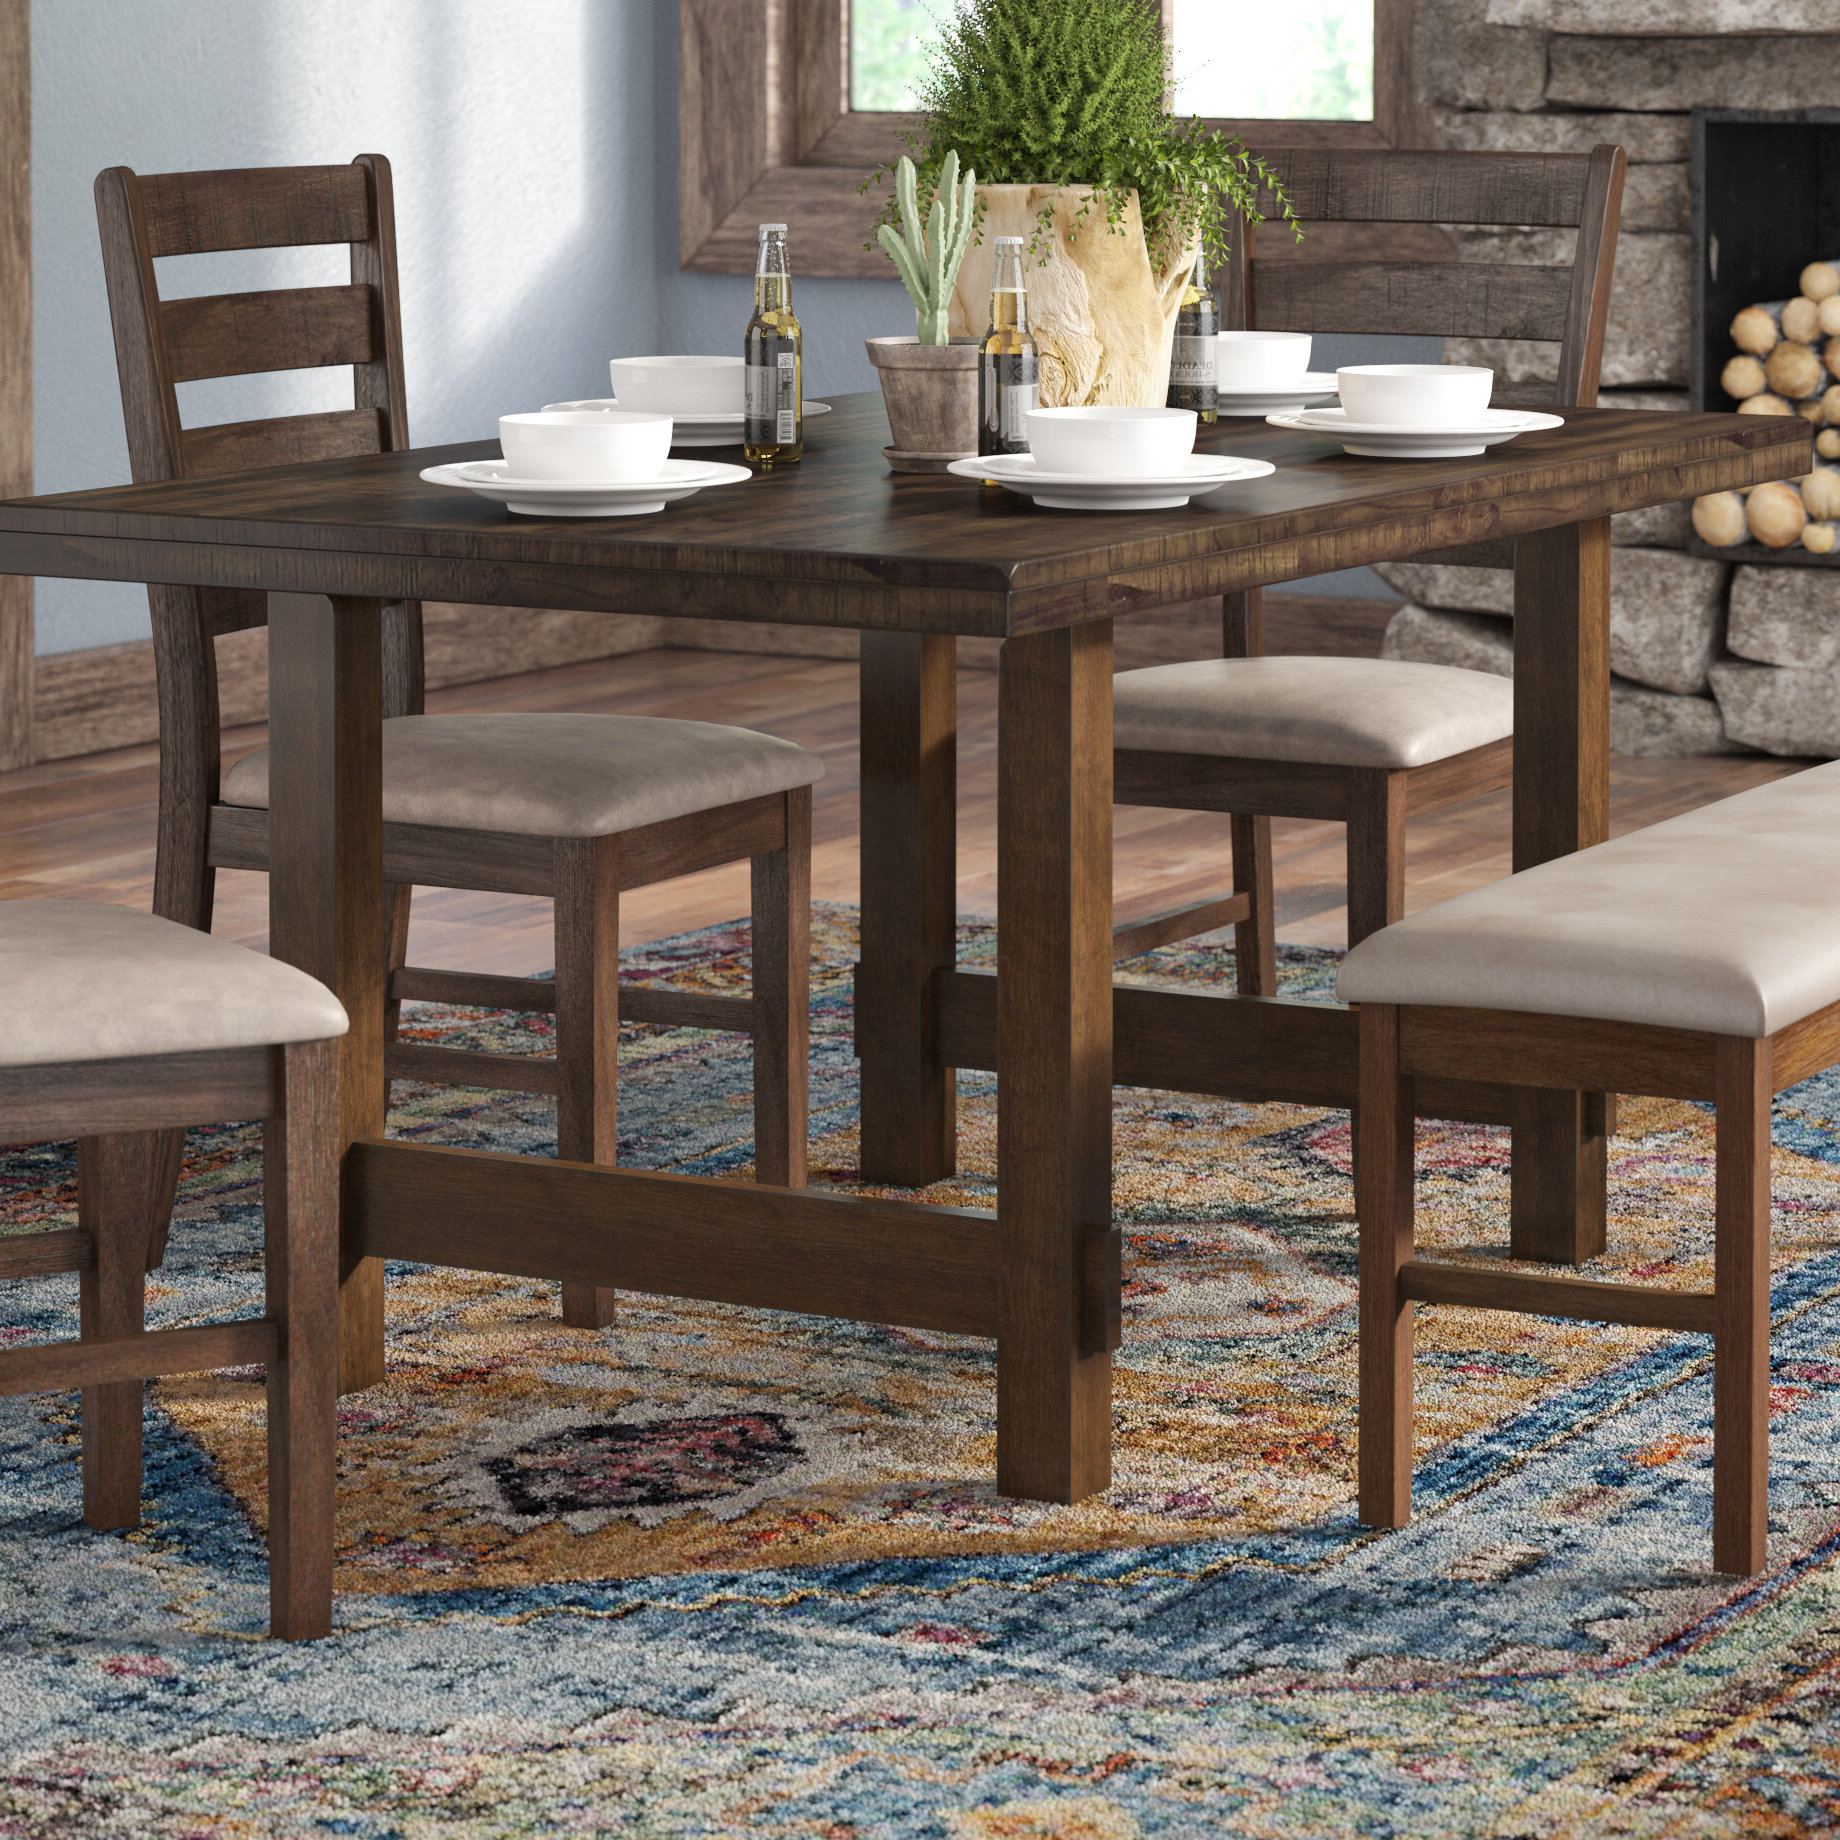 Charcoal Transitional 6 Seating Rectangular Dining Tables Within Current Trent Austin Design Channel Island Dining Table & Reviews (View 23 of 25)